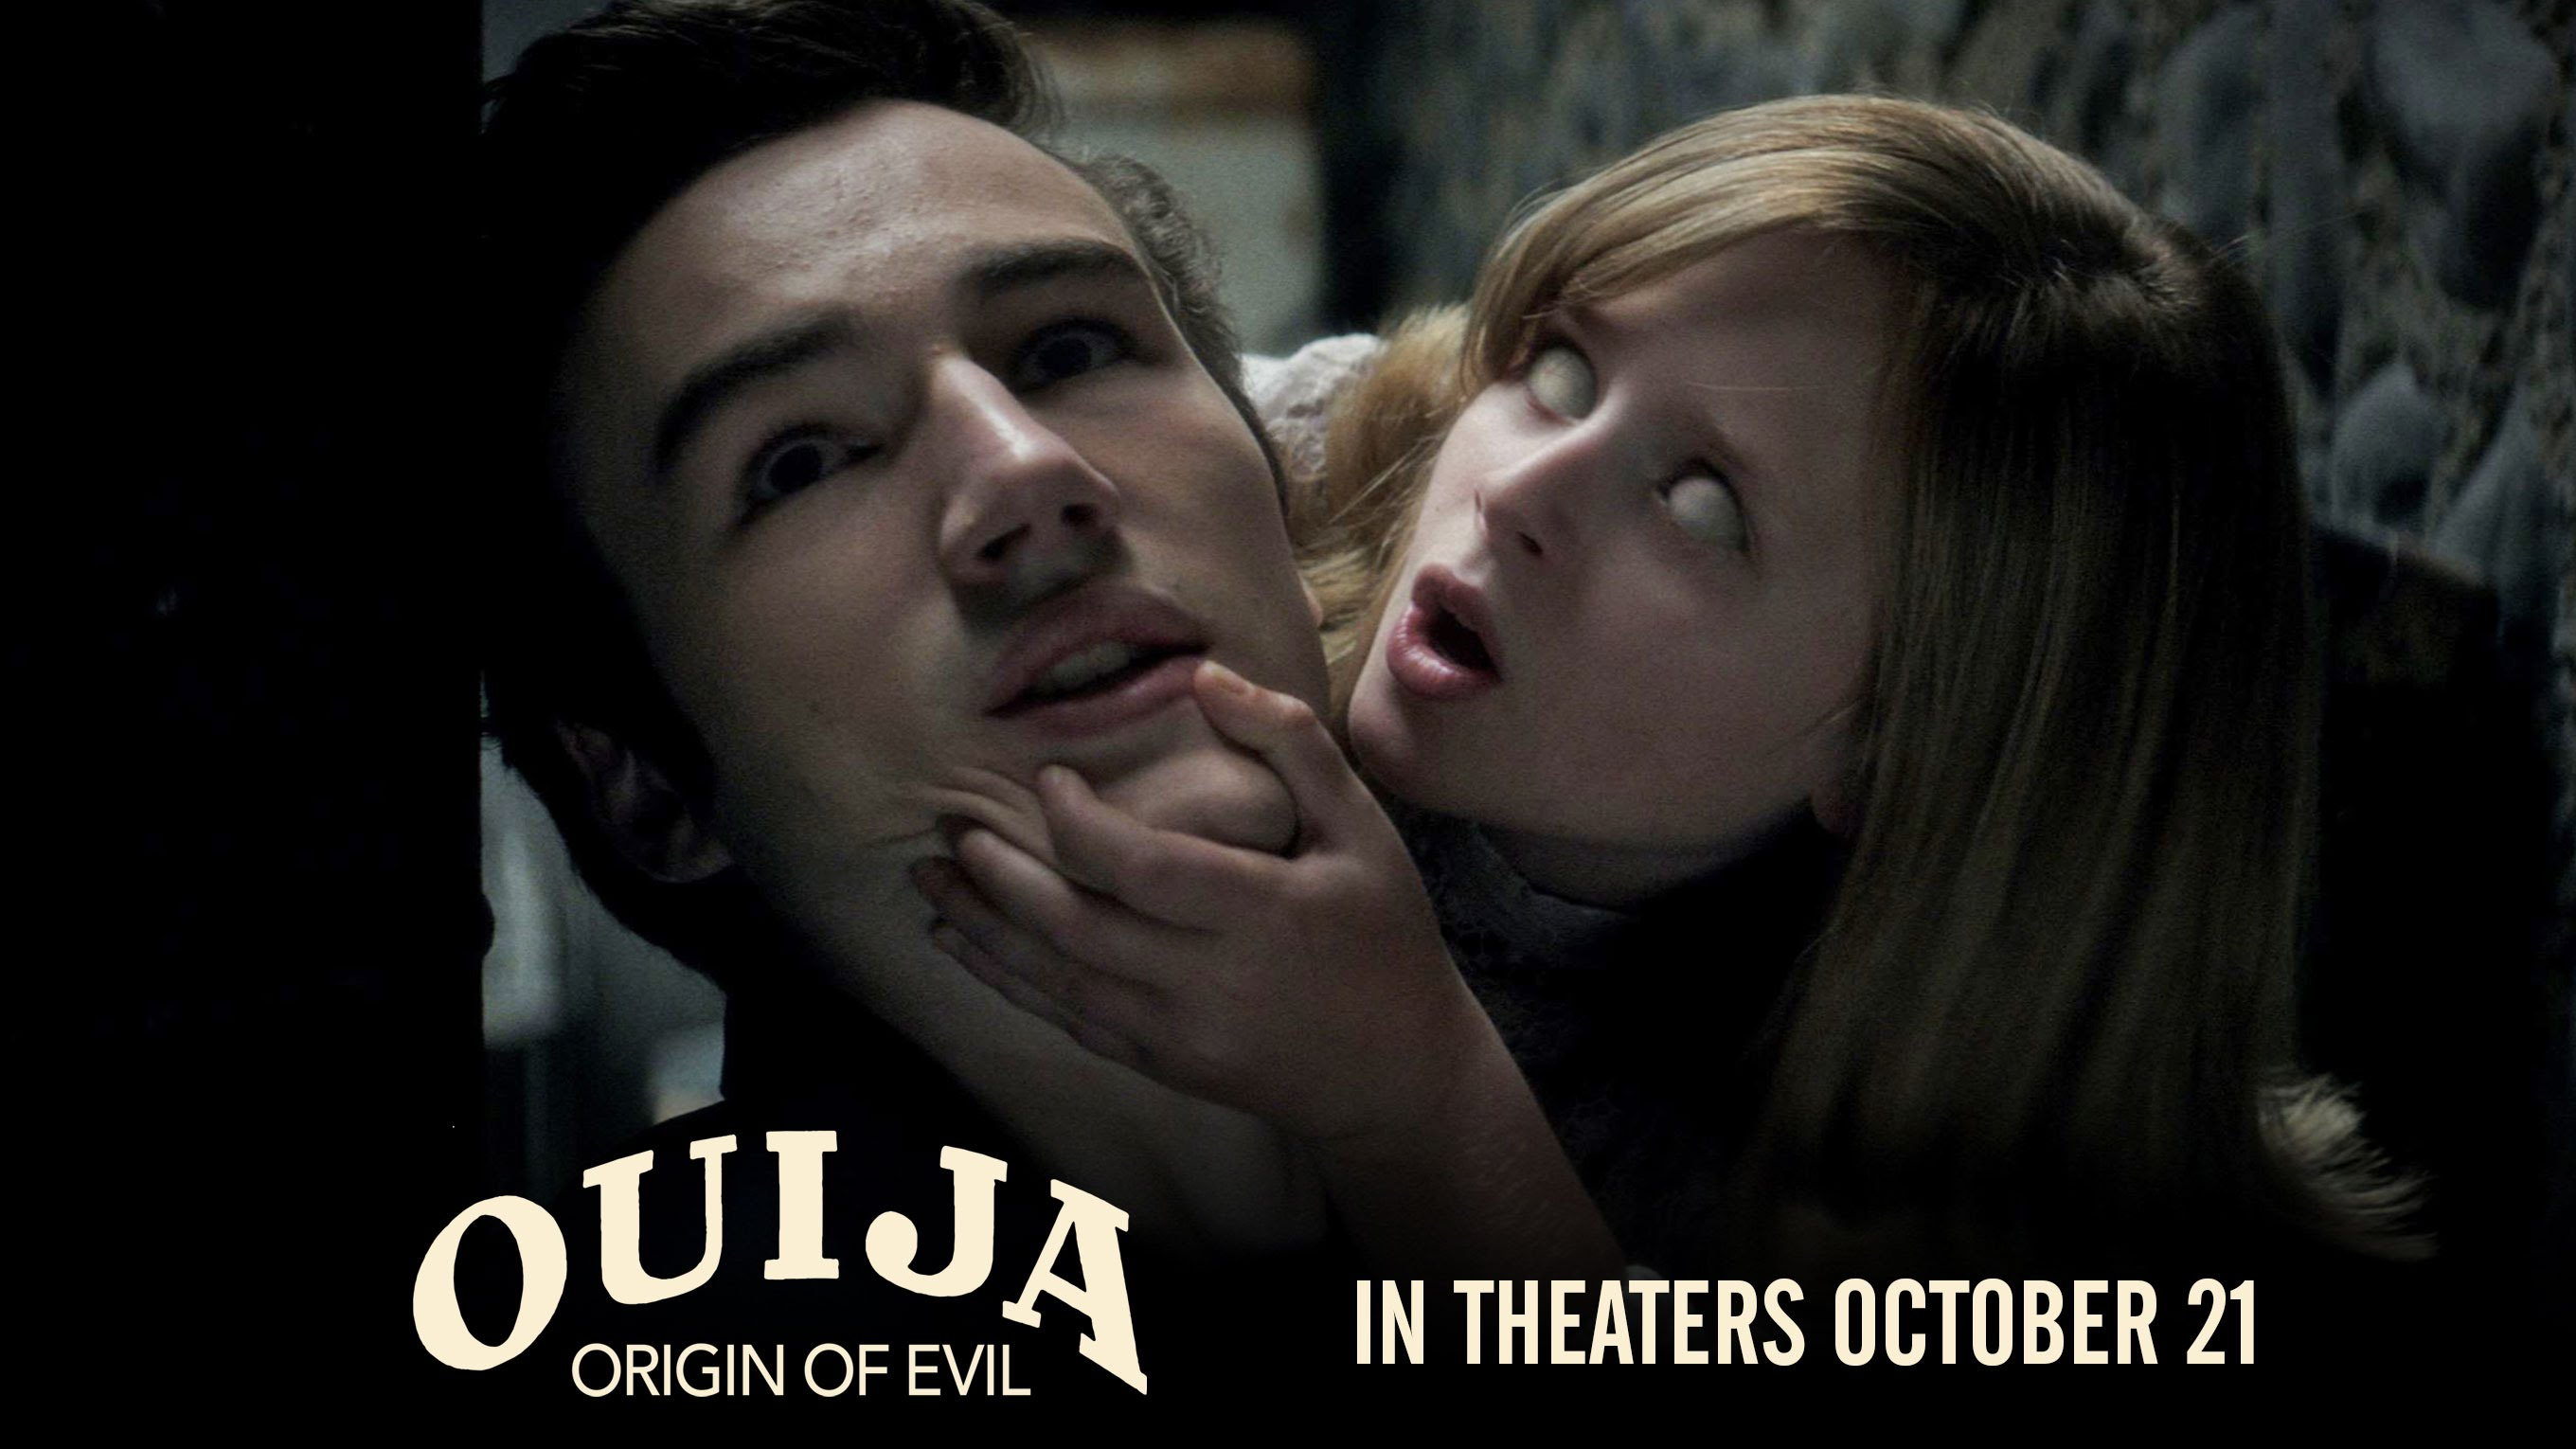 Ouija: Origin of Evil – In Theaters October 21 (TV Spot 4) (HD)